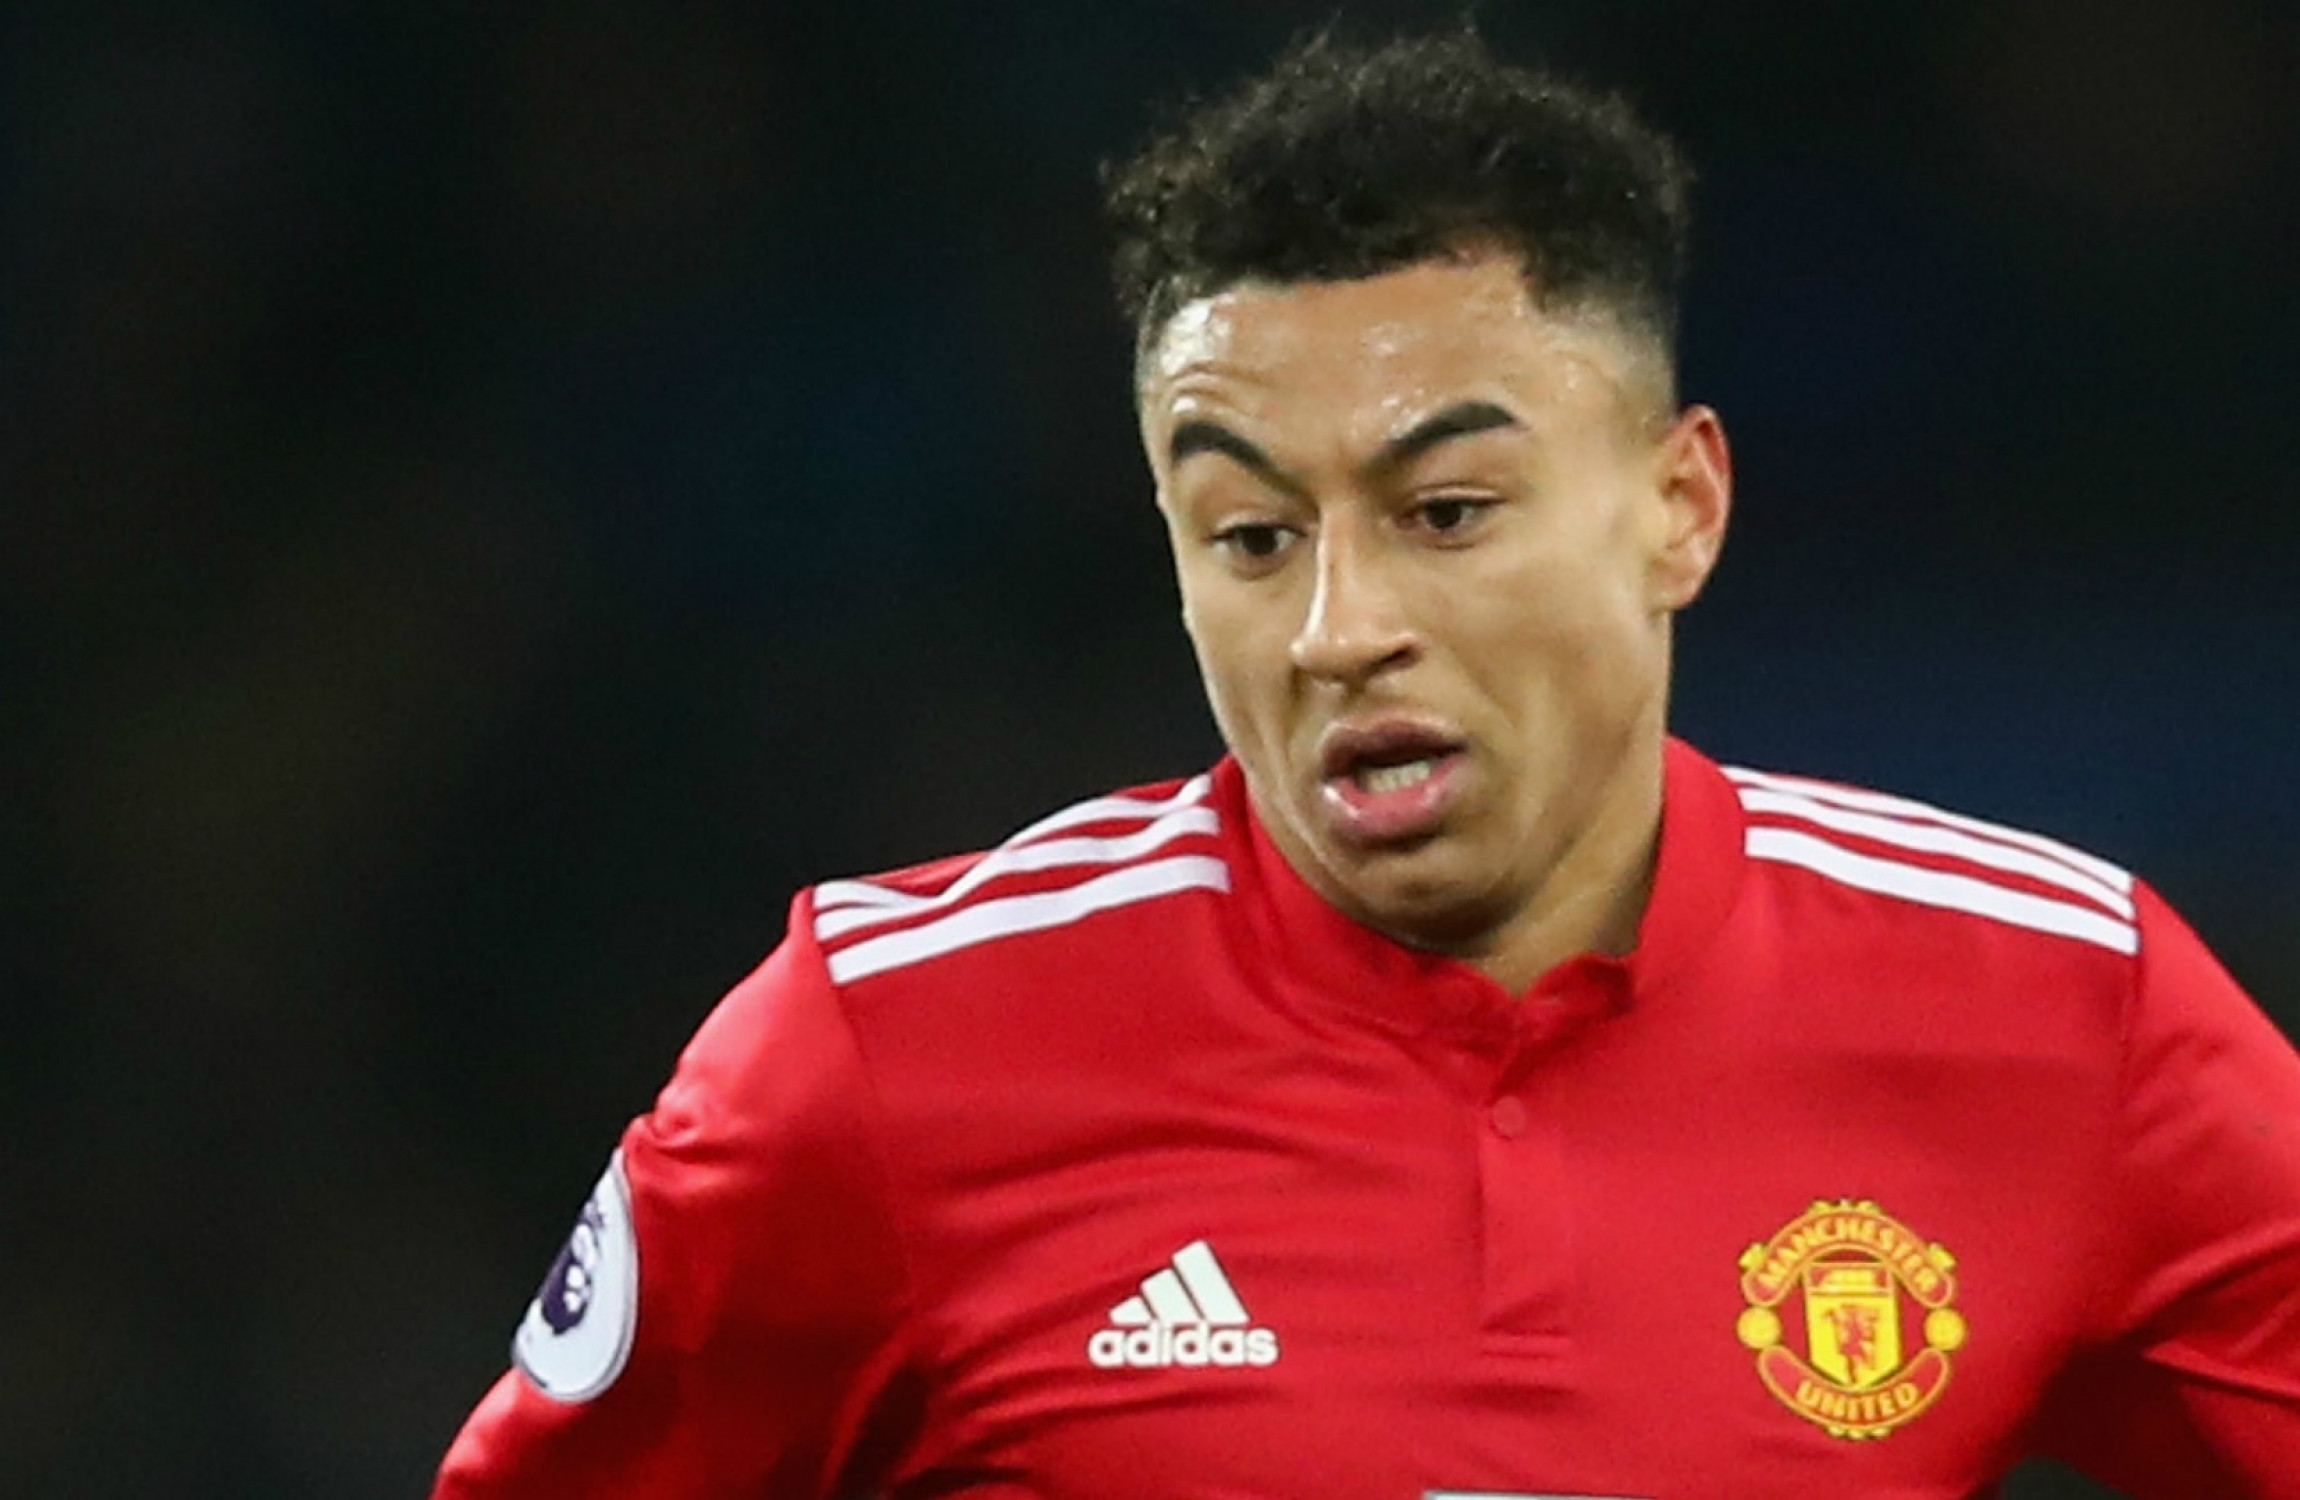 Manchester United's Jesse Lingard sorry for 'totally unacceptable' tweet